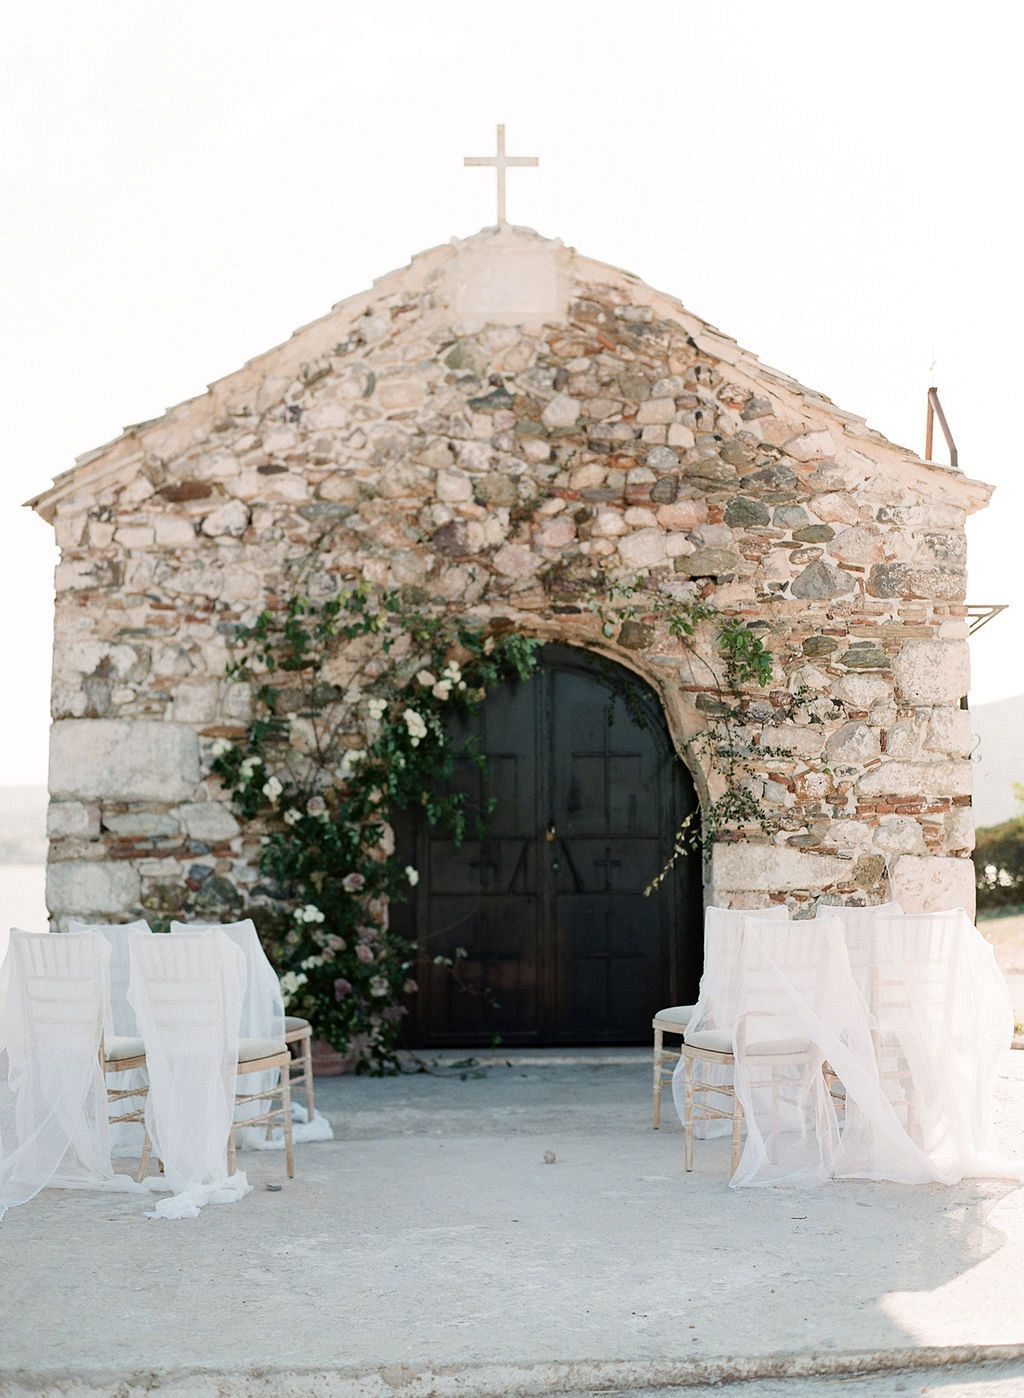 A truly romantic wedding venue in Greece featuring this darling little stone church—a perfect place for the ceremony itself.  The beautiful vines around the do... #Blog #boho wedding decor #Church #Greek #hochzeitsdeko #hochzeitsdeko holz #hochzeitsdeko saal #hochzeitsdeko selber machen #hochzeitsdeko tisch #hochzeitsdeko vintage #Ideas #modern wedding decor #Neutral #outdoor #romantic wedding decor #Sparrow #Wedding #wedding decor #wedding decor diy #wedding decor ideas #wedding decoration